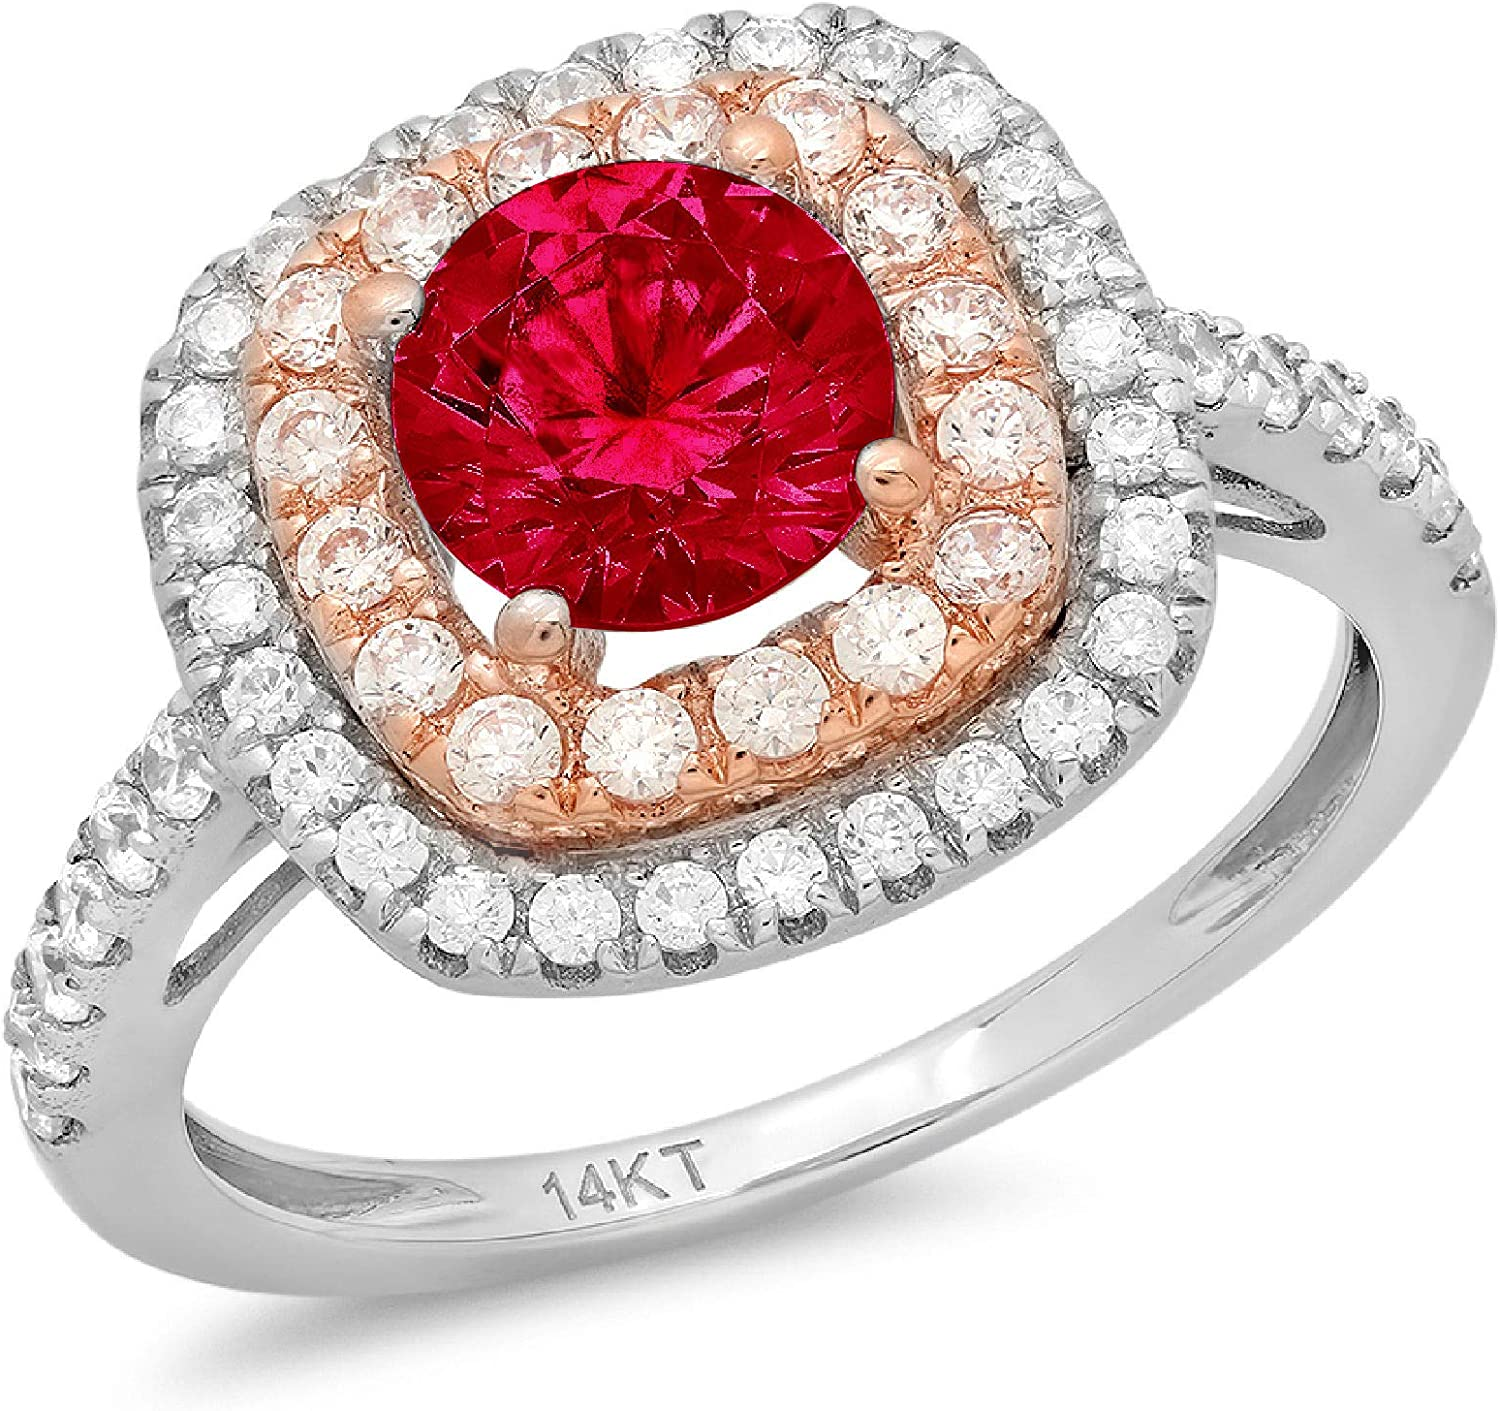 1.69ct Round Cut Solitaire double Halo Flawless Ideal VVS1 Simulated CZ Red Ruby Engagement Promise Statement Anniversary Bridal Wedding Accent Designer Ring Solid 14k two tone Gold